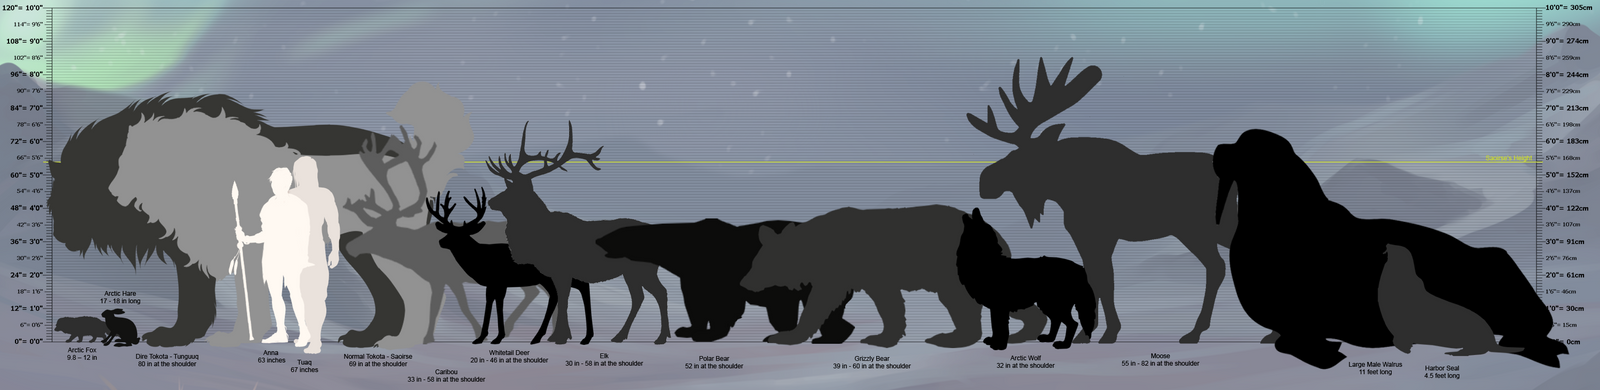 Elephant seal size compared too many fish dating site 3